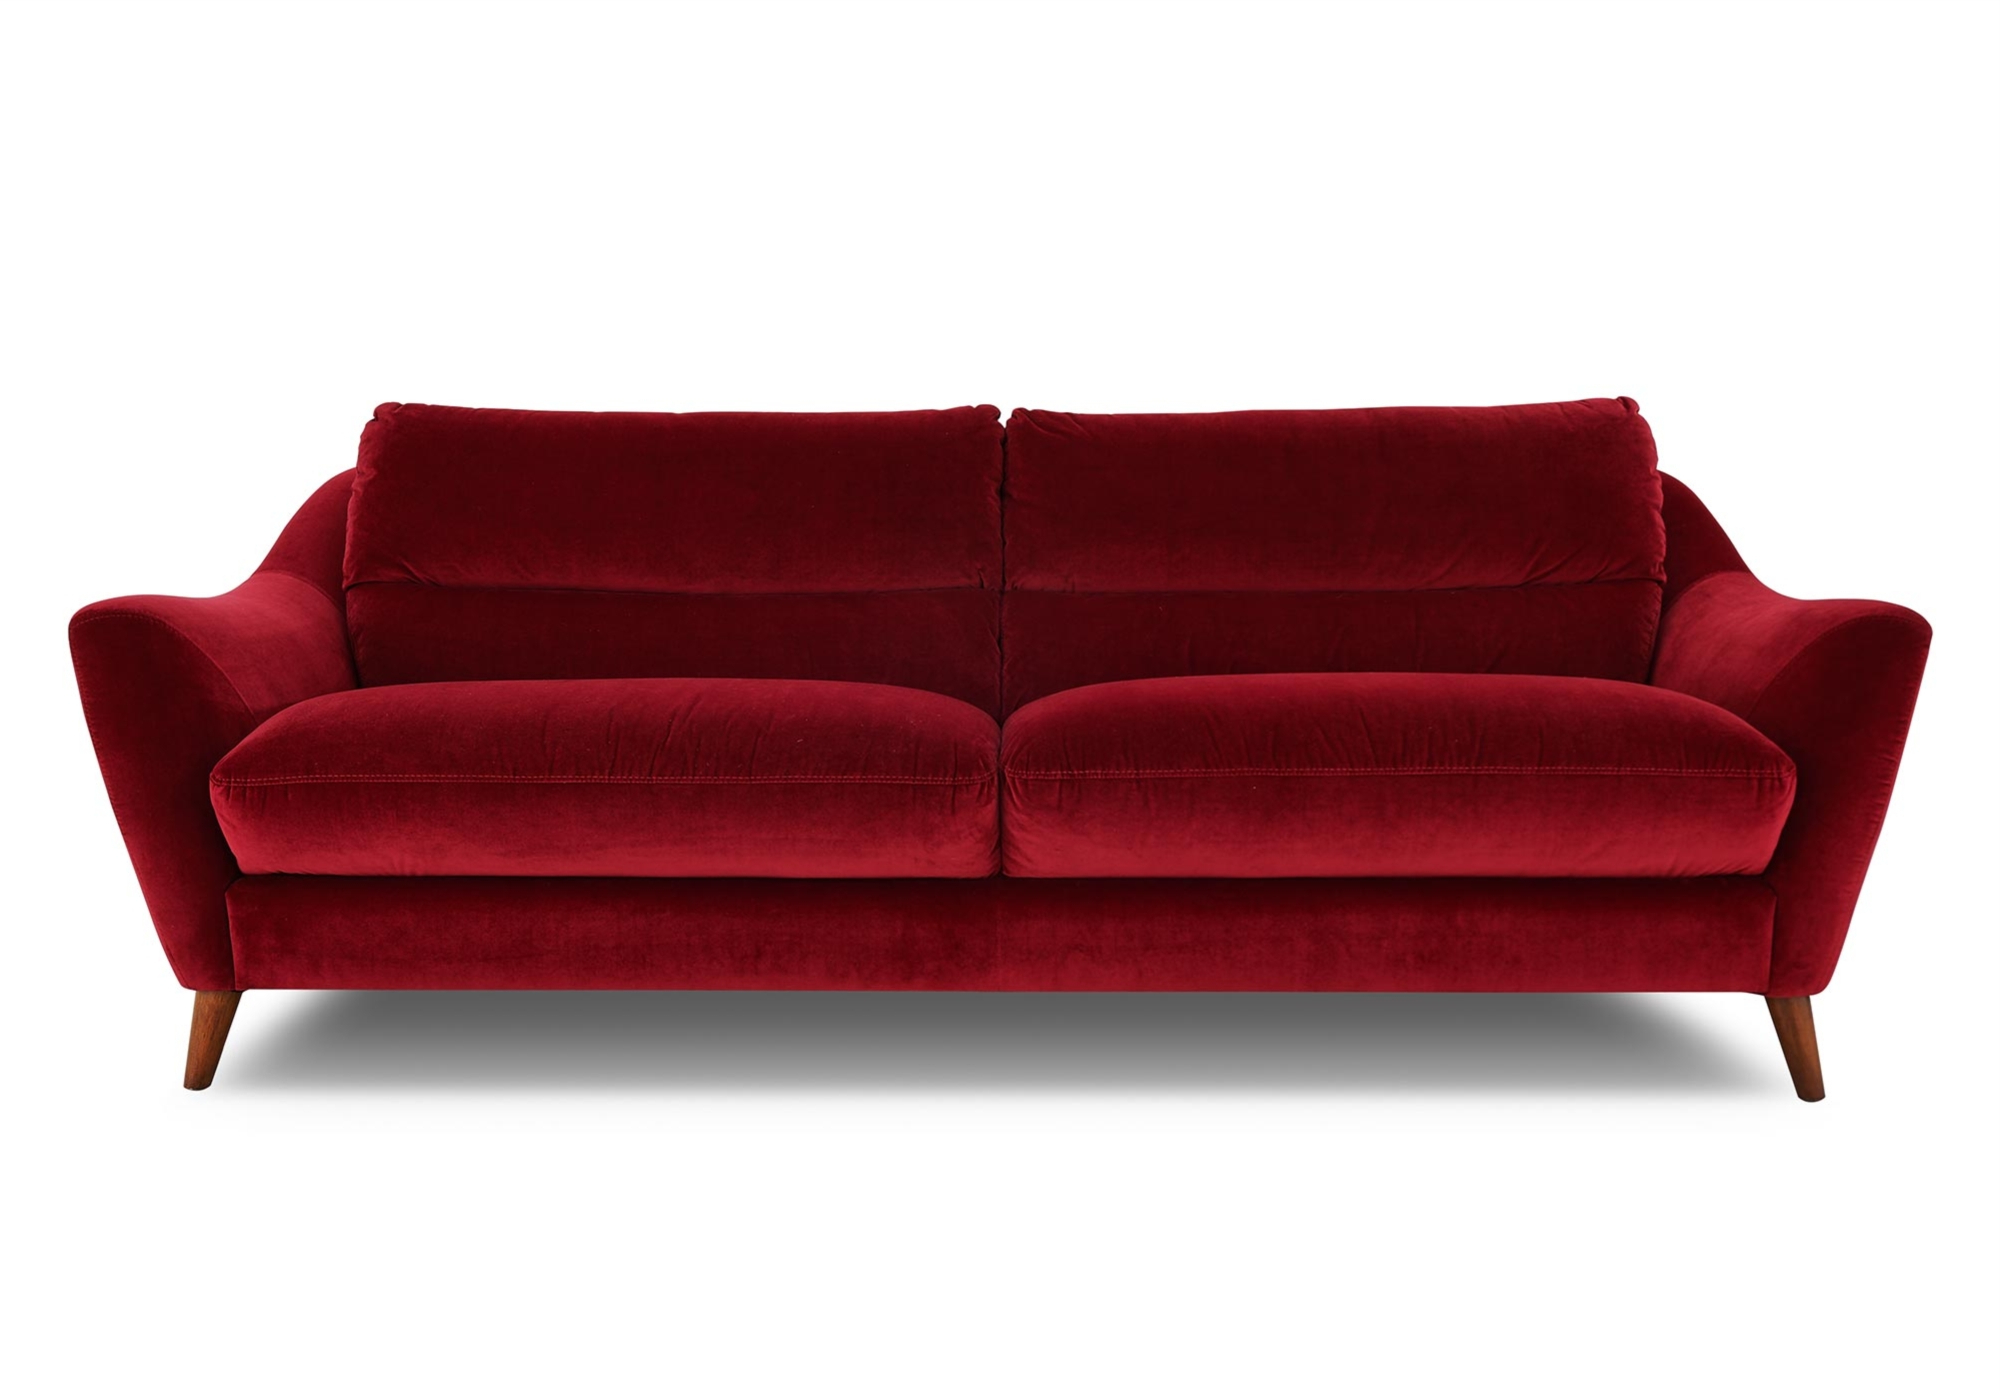 Red Sofas And Chairs Inside Well Known Sofa: Beautiful Fabric Sofa Fabric Sofas On Sale, Fabric Sectional (Gallery 17 of 20)